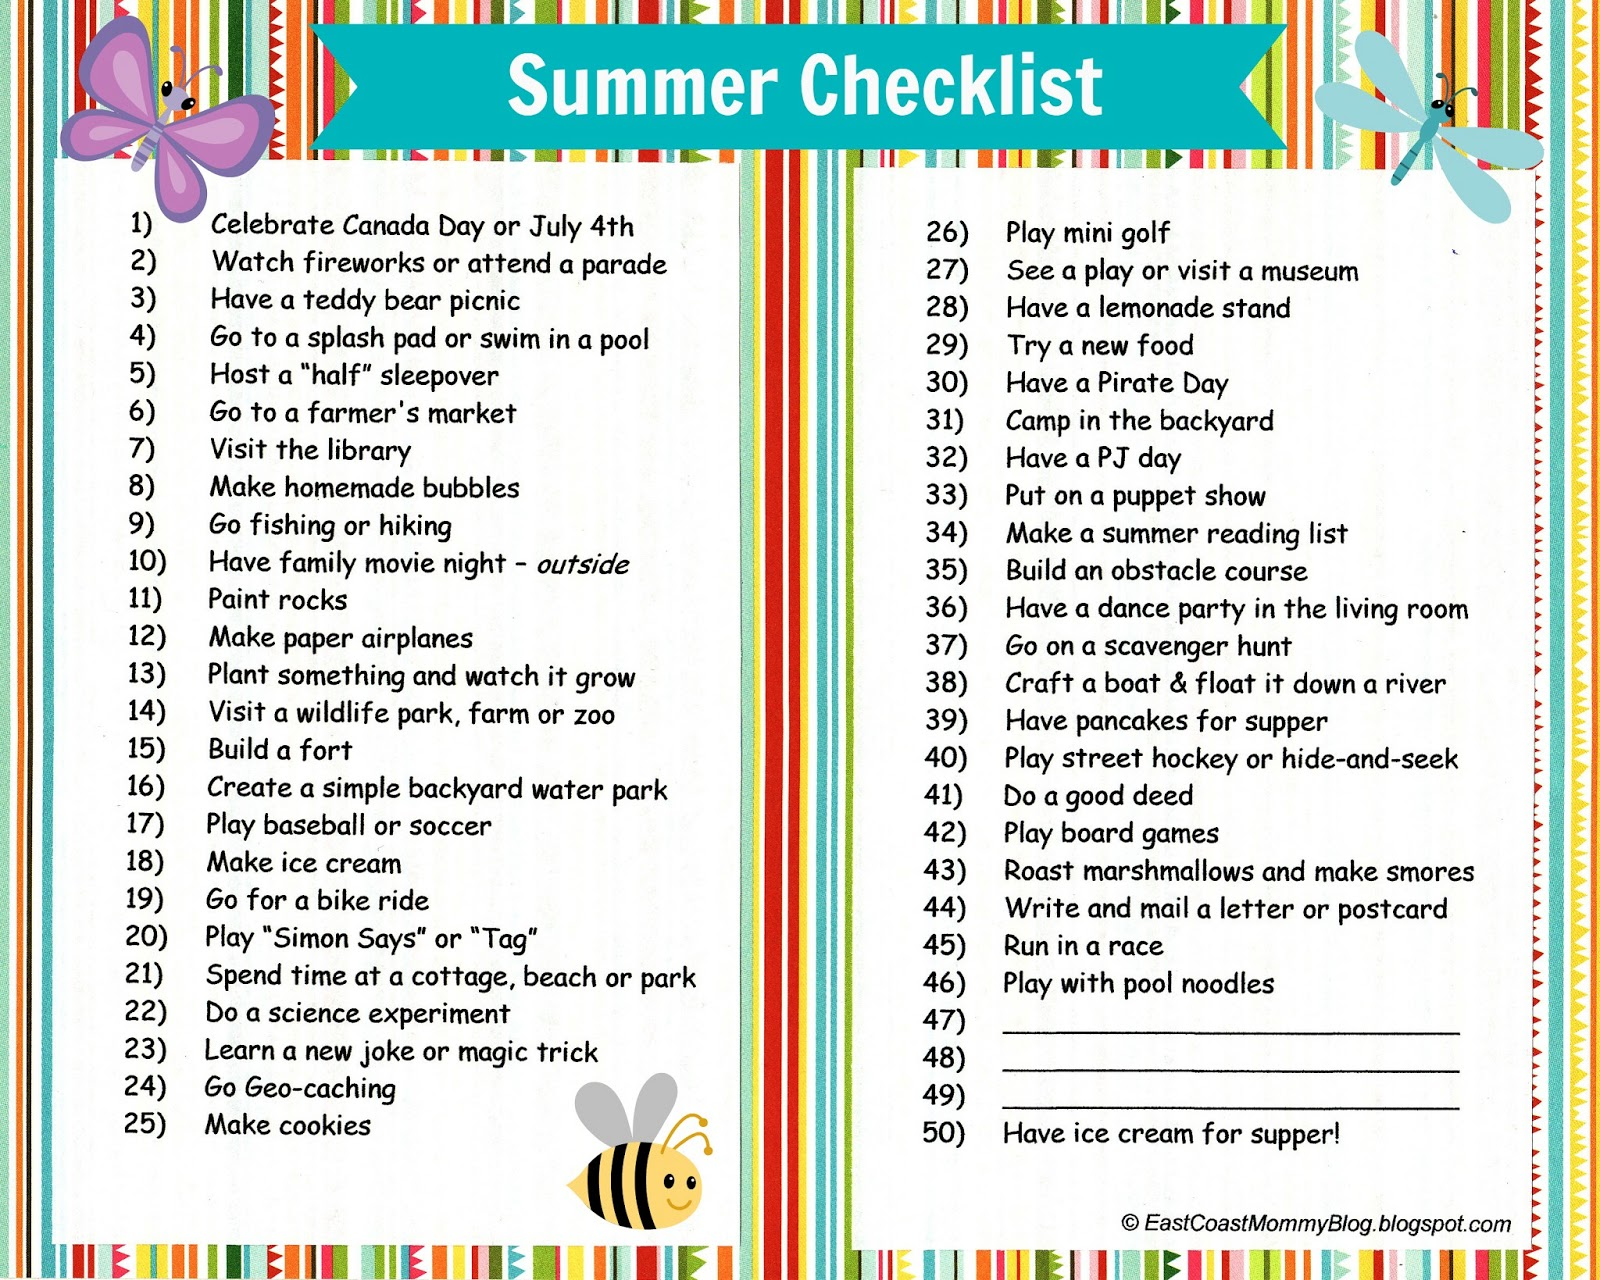 East Coast Mommy Summer Checklist With Free Printable Div Div Class Fileinfo 1600 X 1280 Jpeg 538 Kb Div Div Div Div Class Item A Class Thumb Target Blank Href Http Www Kristendukephotography Com Wp Content Uploads 2014 01 Cruise Packing List 2 824x1024 Jpg H Id Images 5158 1 Div Class Cico Style Width 230px Height 170px Img Height 170 Width 230 Src Http Tse2 Mm Bing Net Th Id Oip A Rk4lym2tt5xqr C049ghajn Amp W 230 Amp H 170 Amp Rs 1 Amp Pcl Dddddd Amp O 5 Amp Pid 1 1 Alt Div A Div Class Meta A Class Tit Target Blank Href Http Www Kristendukephotography Com Plan Family Cruise H Id Images 5156 1 Www Kristendukephotography Com A Div Class Des How To Plan For Your First Family Cruise